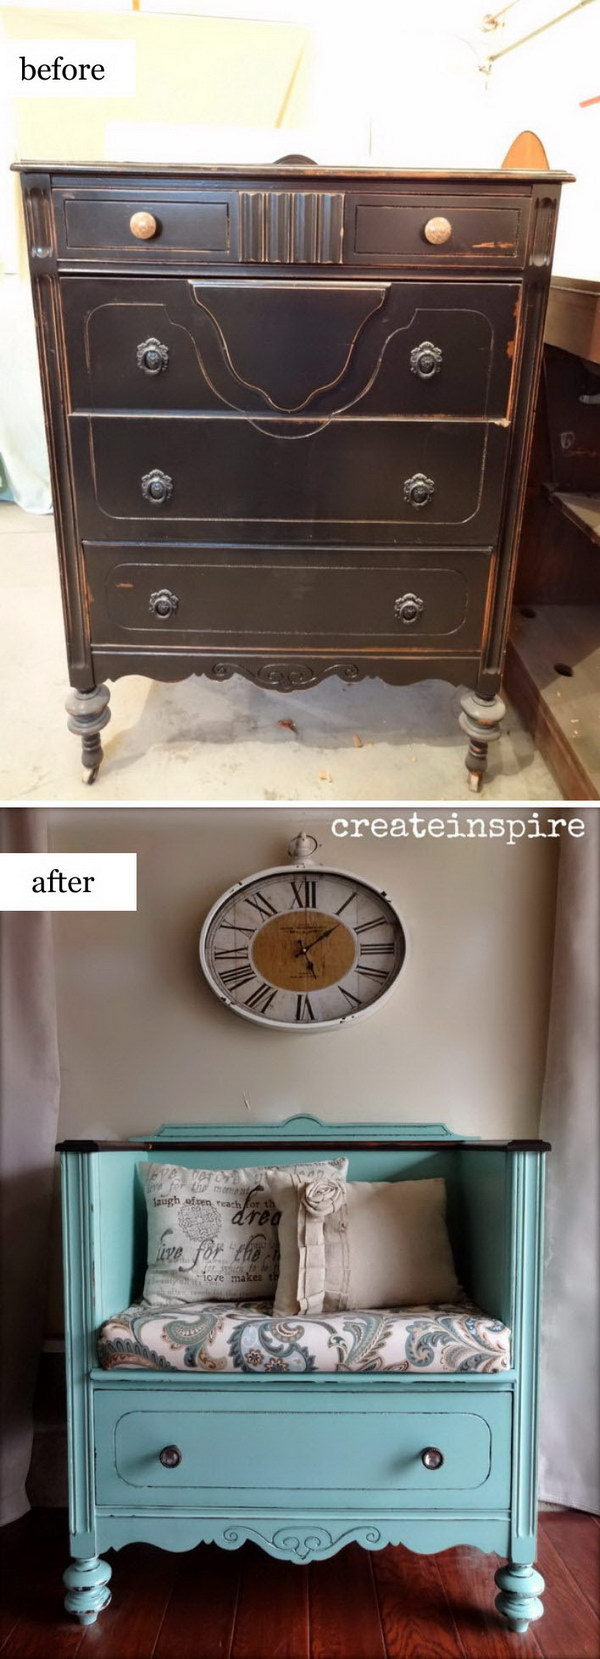 DIY Bench from an Old Dresser.